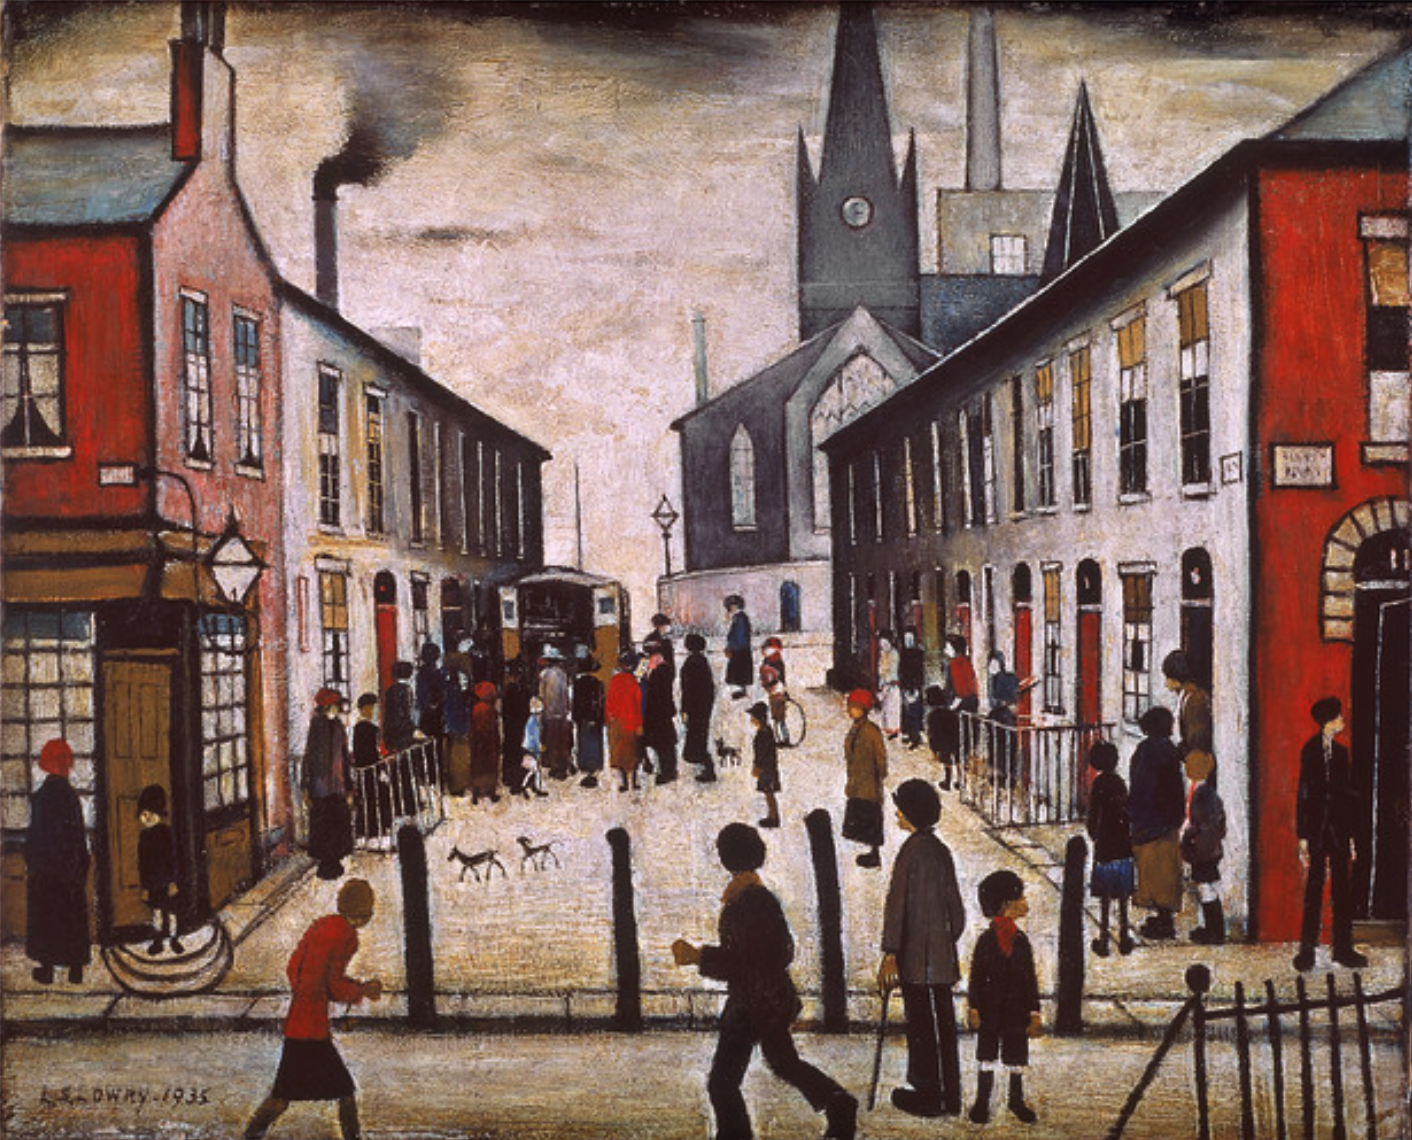 The Fever Van (1935) by Laurence Stephen Lowry (1887 - 1976), English artist.